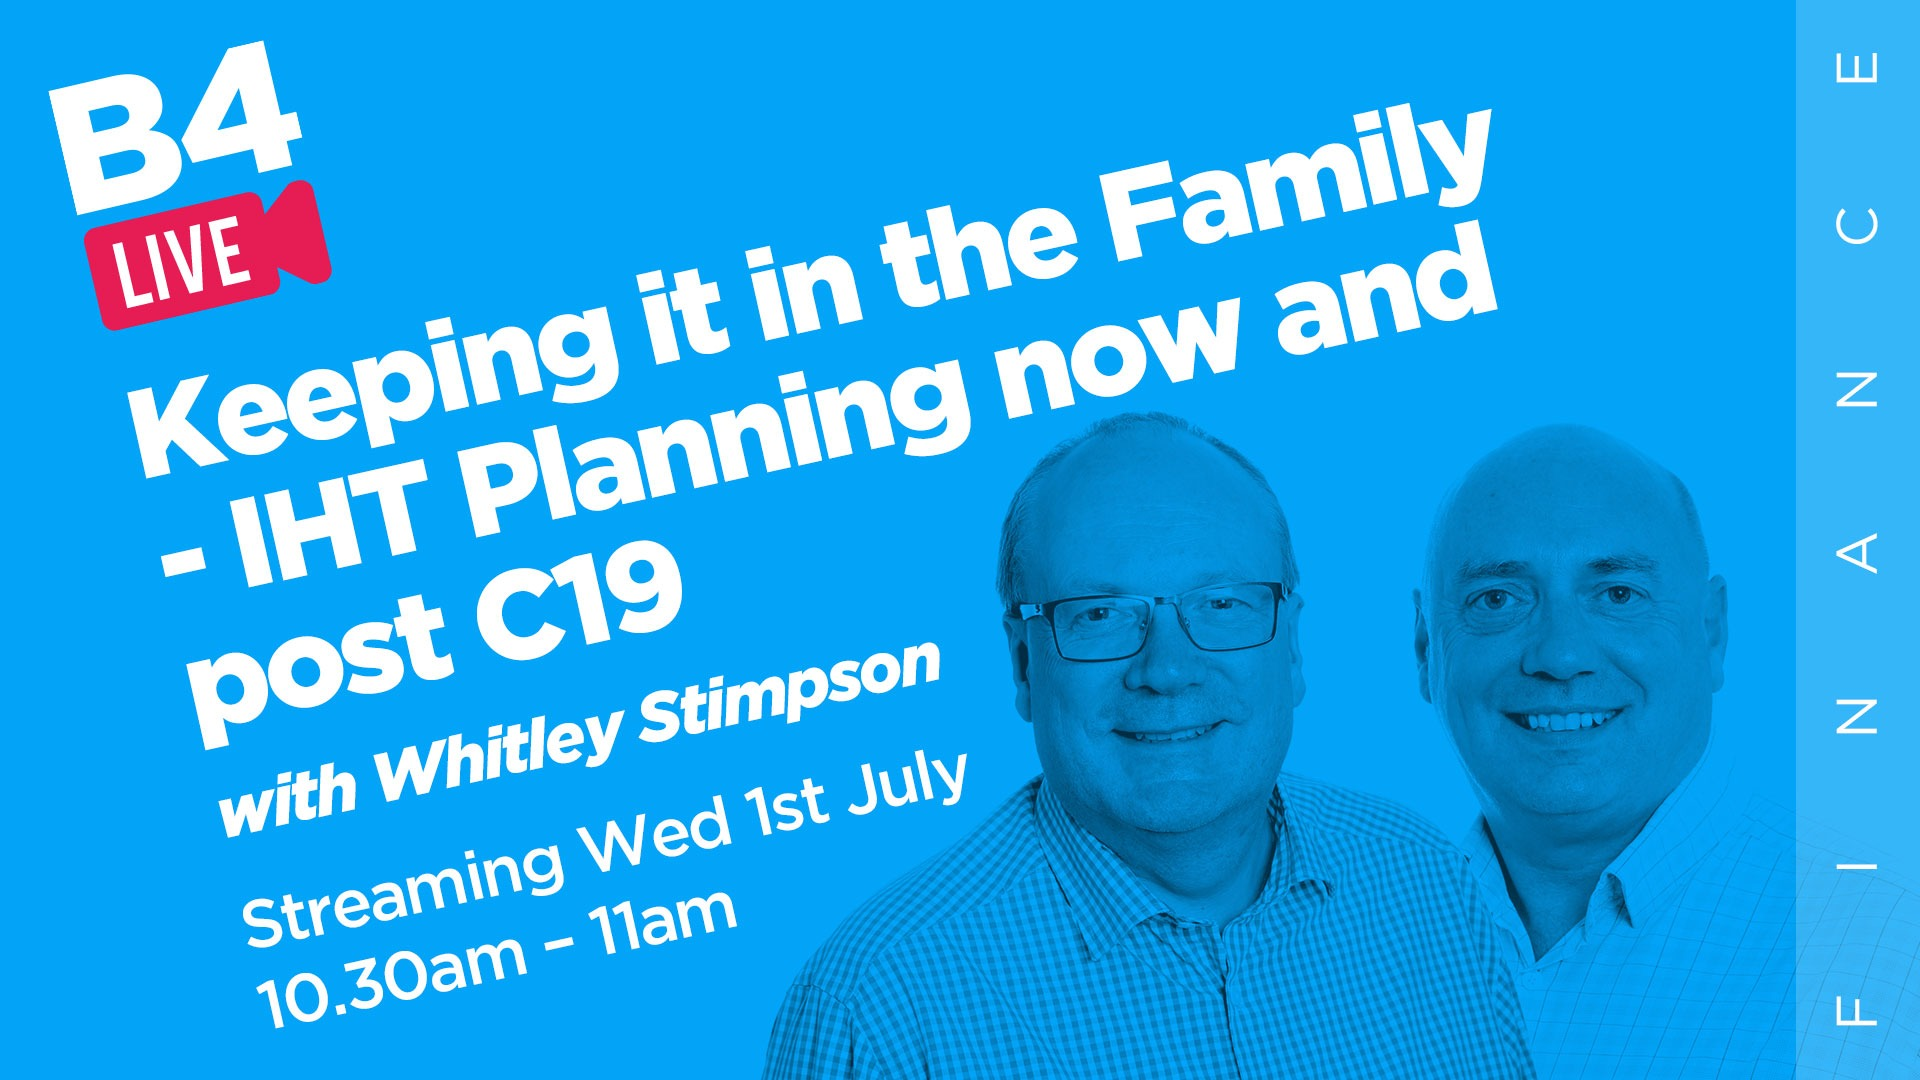 Keeping it in the Family - IHT Planning now and post C19 video chat